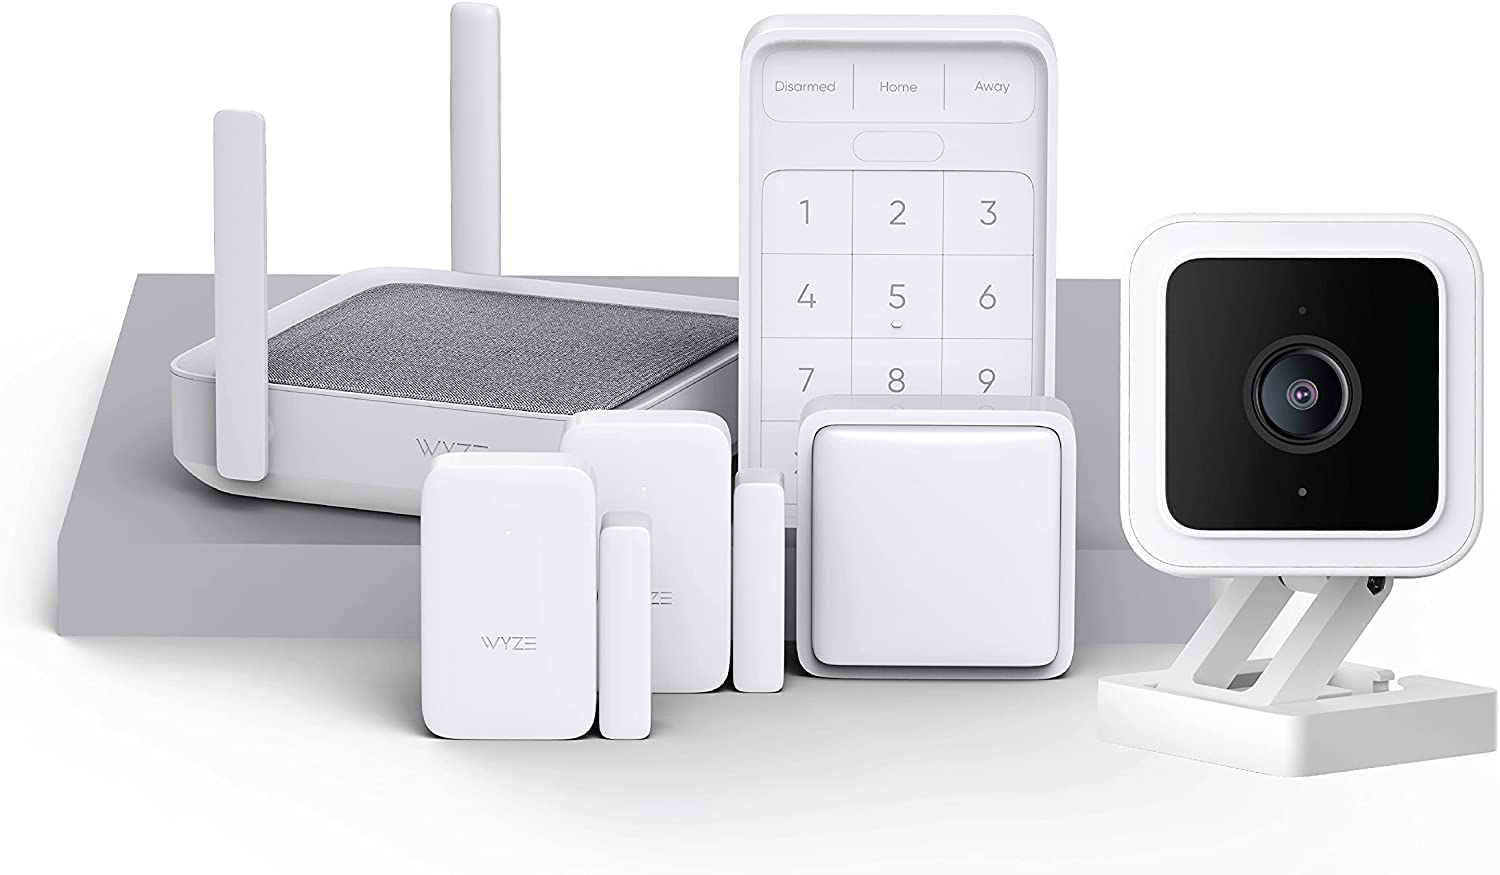 Wyze Home Security System Core Kit with Hub, Keypad, Motion, Entry Sensors (2) with Wyze Cam v3 Indoor/Outdoor Camera